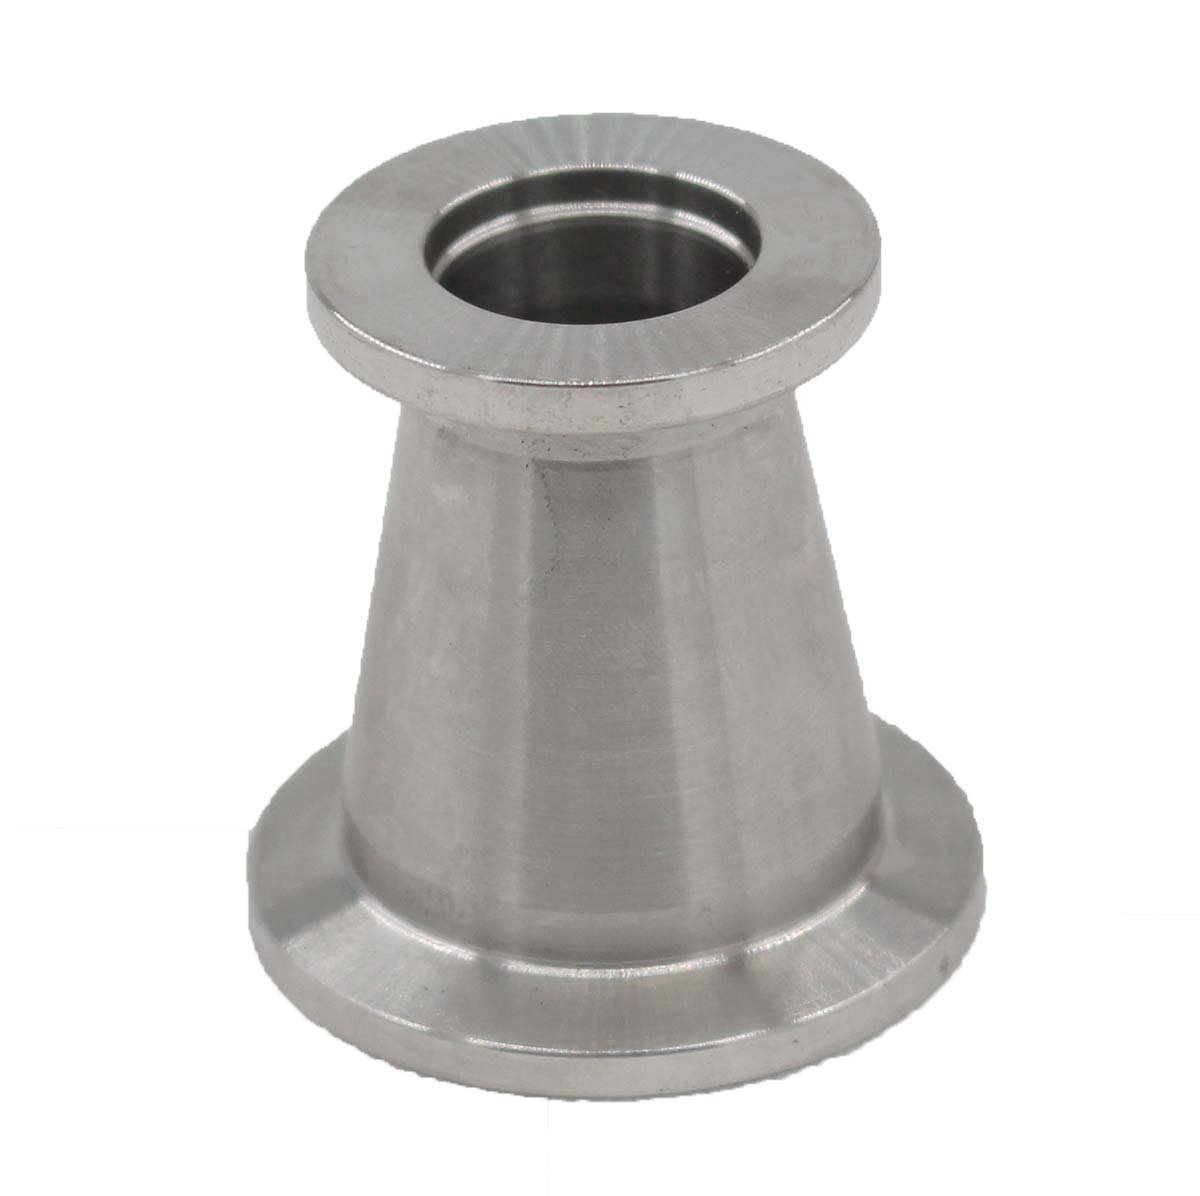 KF25 (NW25) to KF16 (NW16) Flange vacuum conical reducer Stainless steel 304 Compatible with Vacuum Fittings by MOTOKU